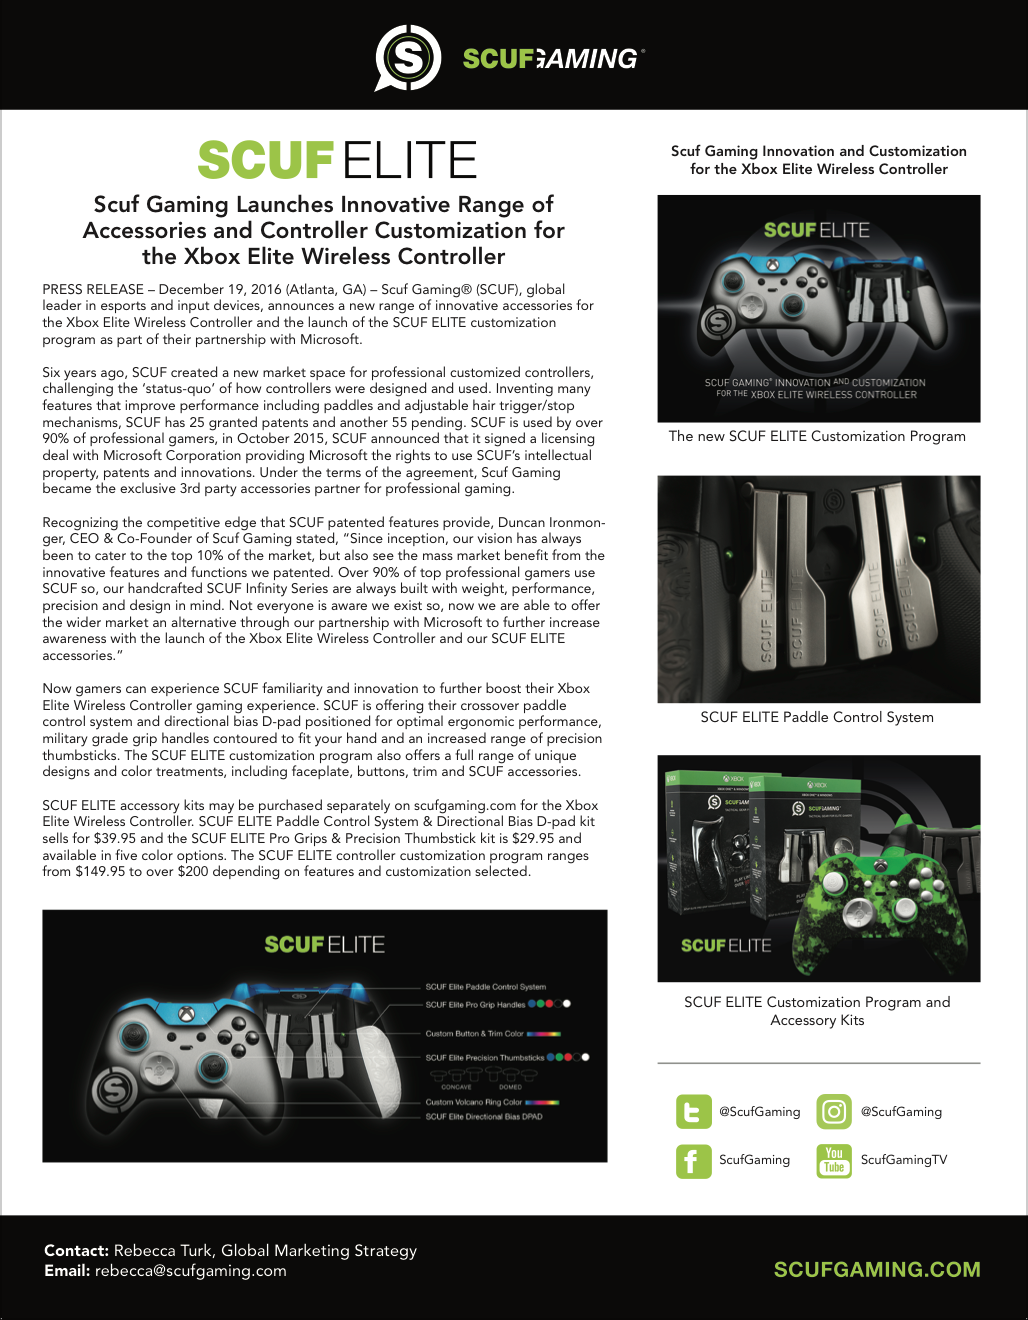 scufelite_pressrelease